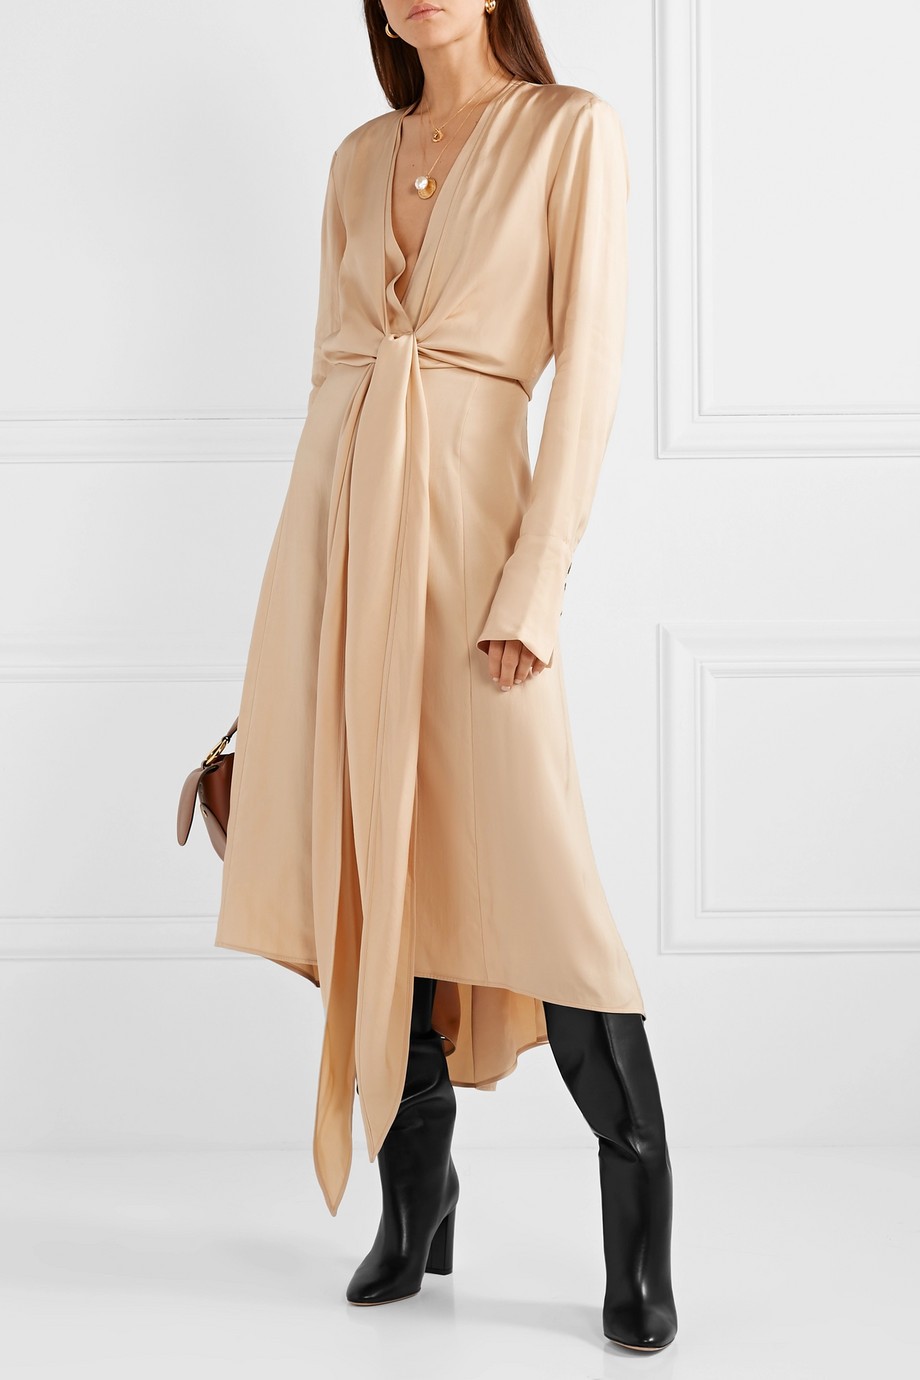 Spring Boots Trend 2019 - Boots with Dresses Gianvito Rossi